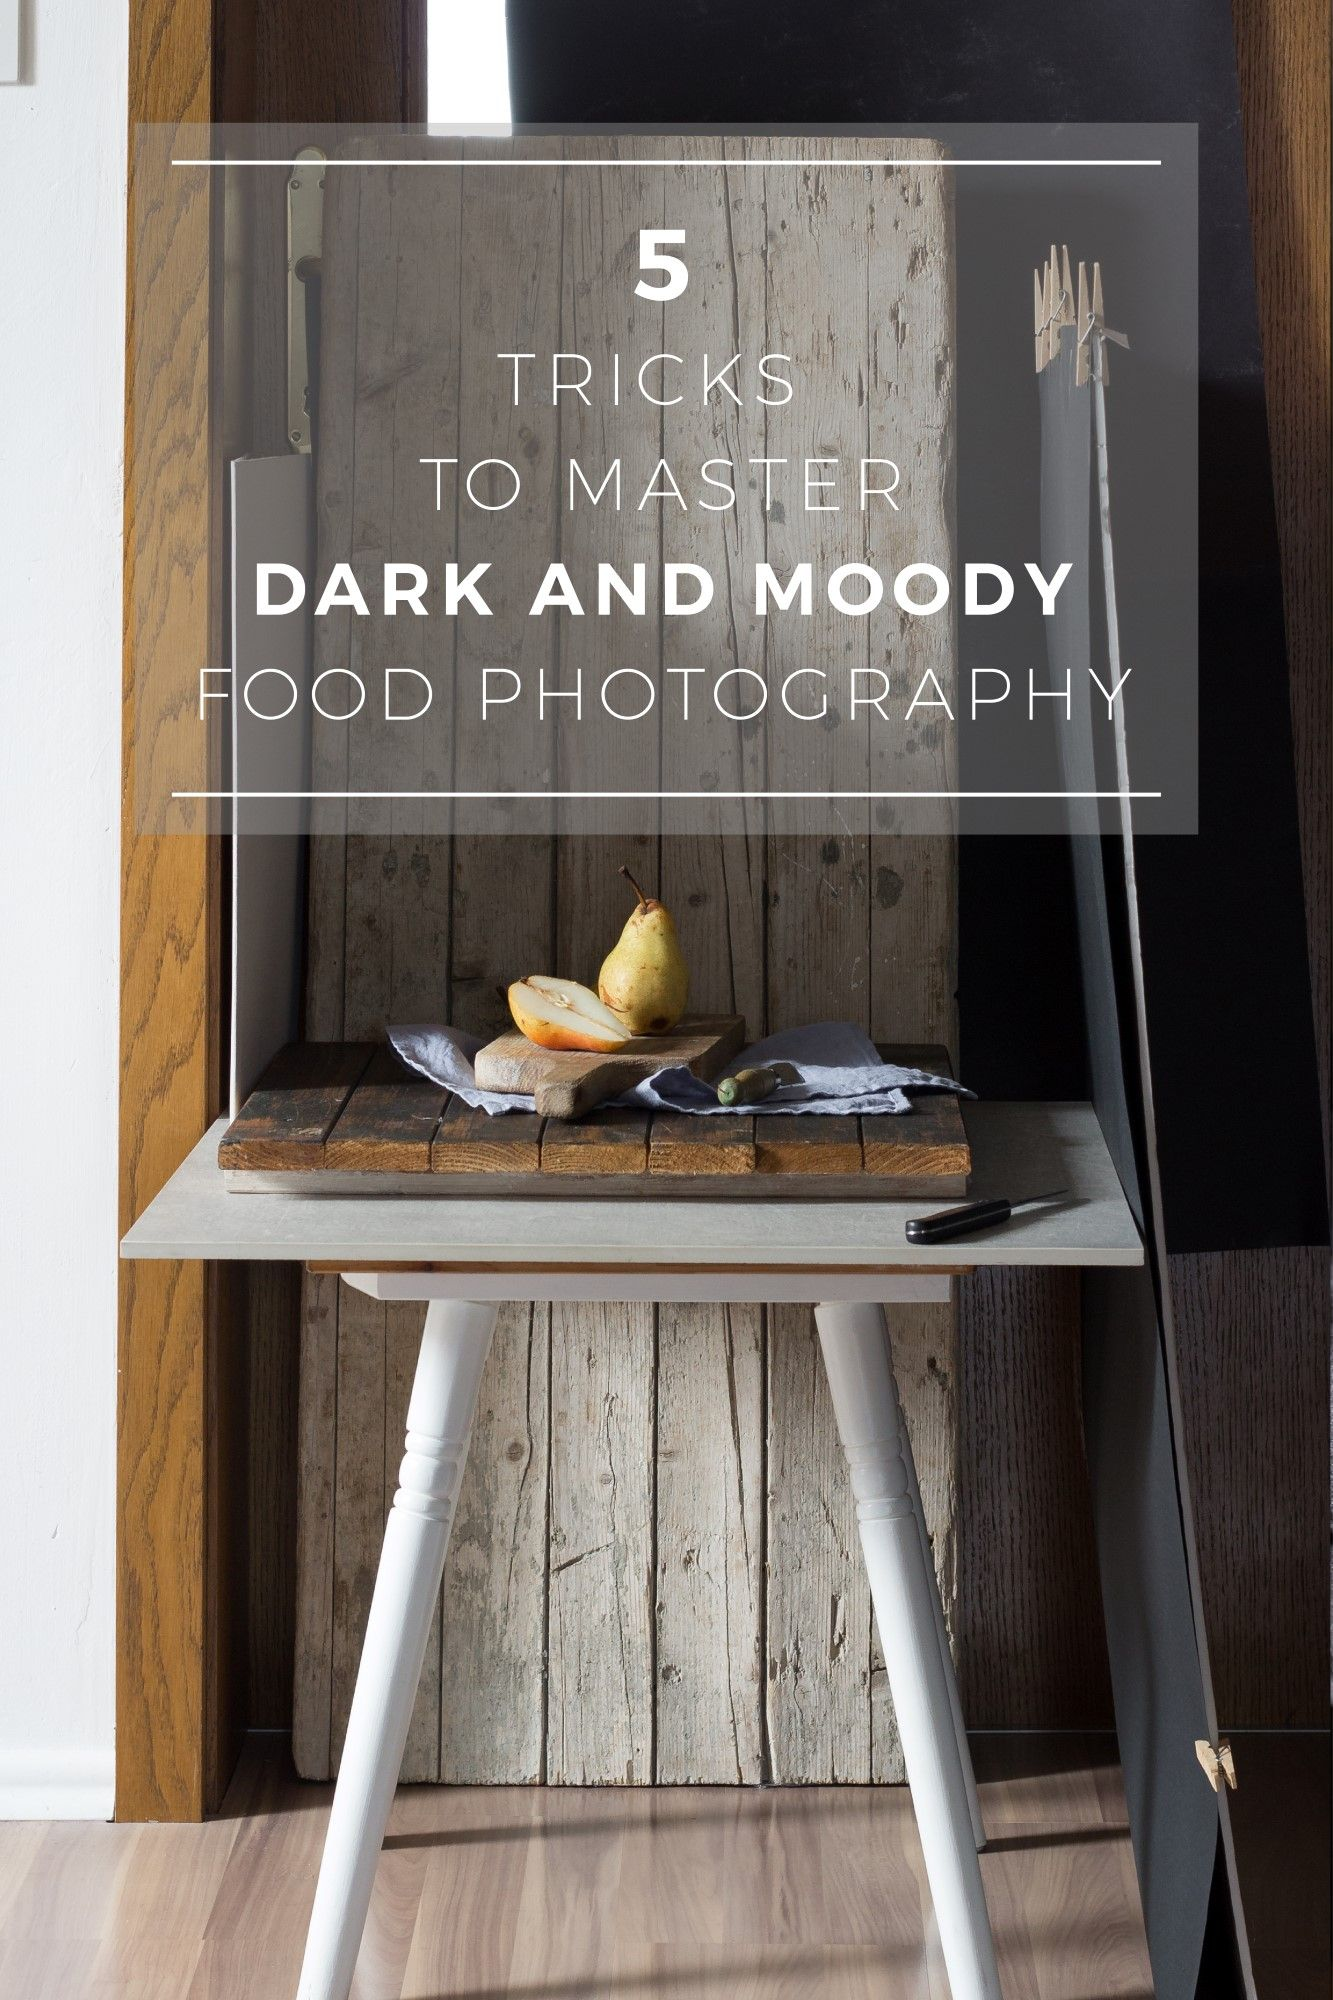 5 Tricks To Master Dark And Moody Food Photography